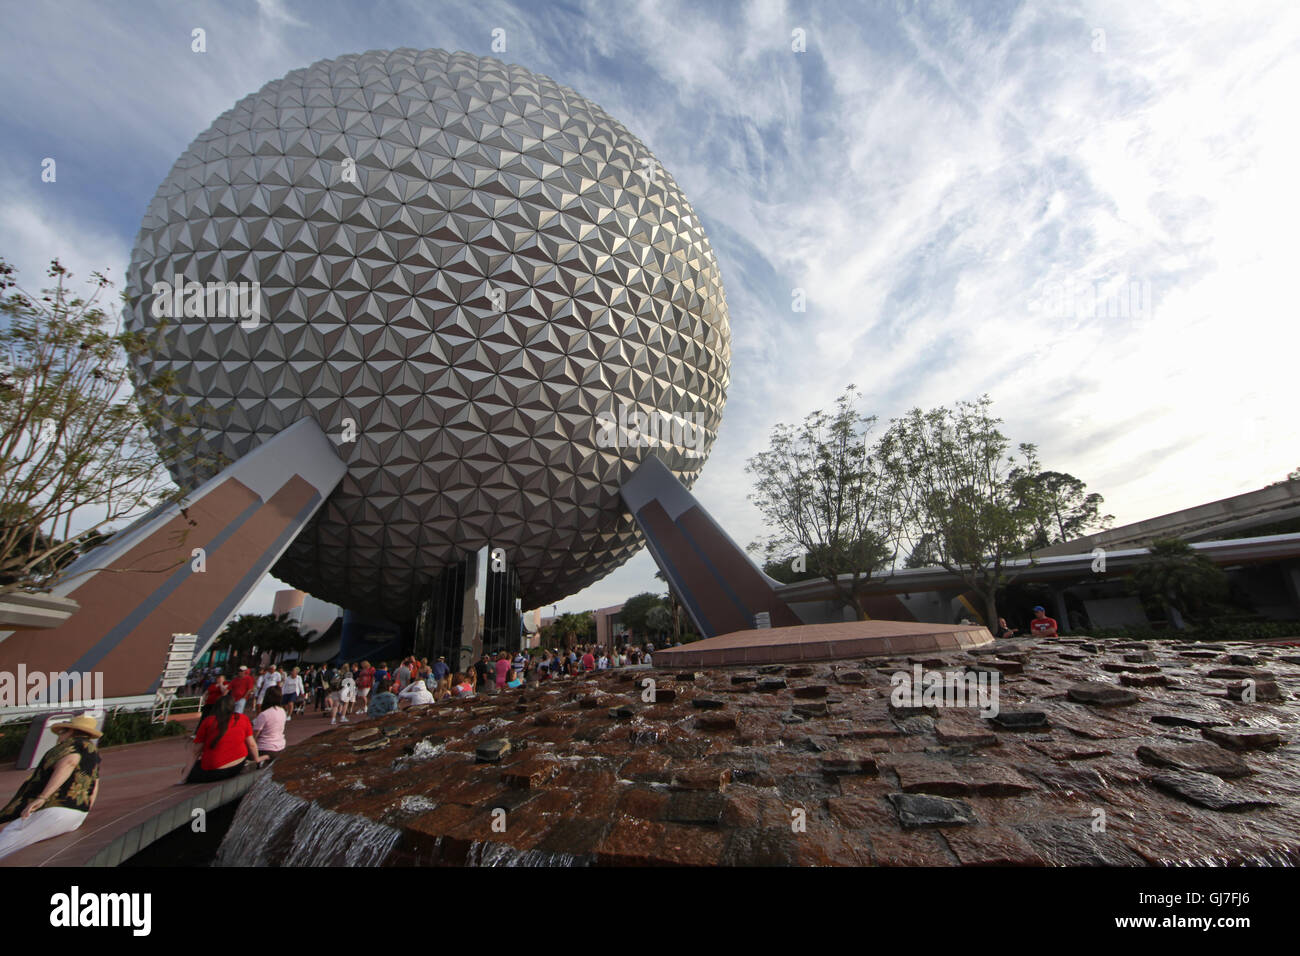 Orlando, Florida, USA. April 28th, 2010. Spaceship Earth with water feature in front at Epcot, Walt Disney World - Stock Image